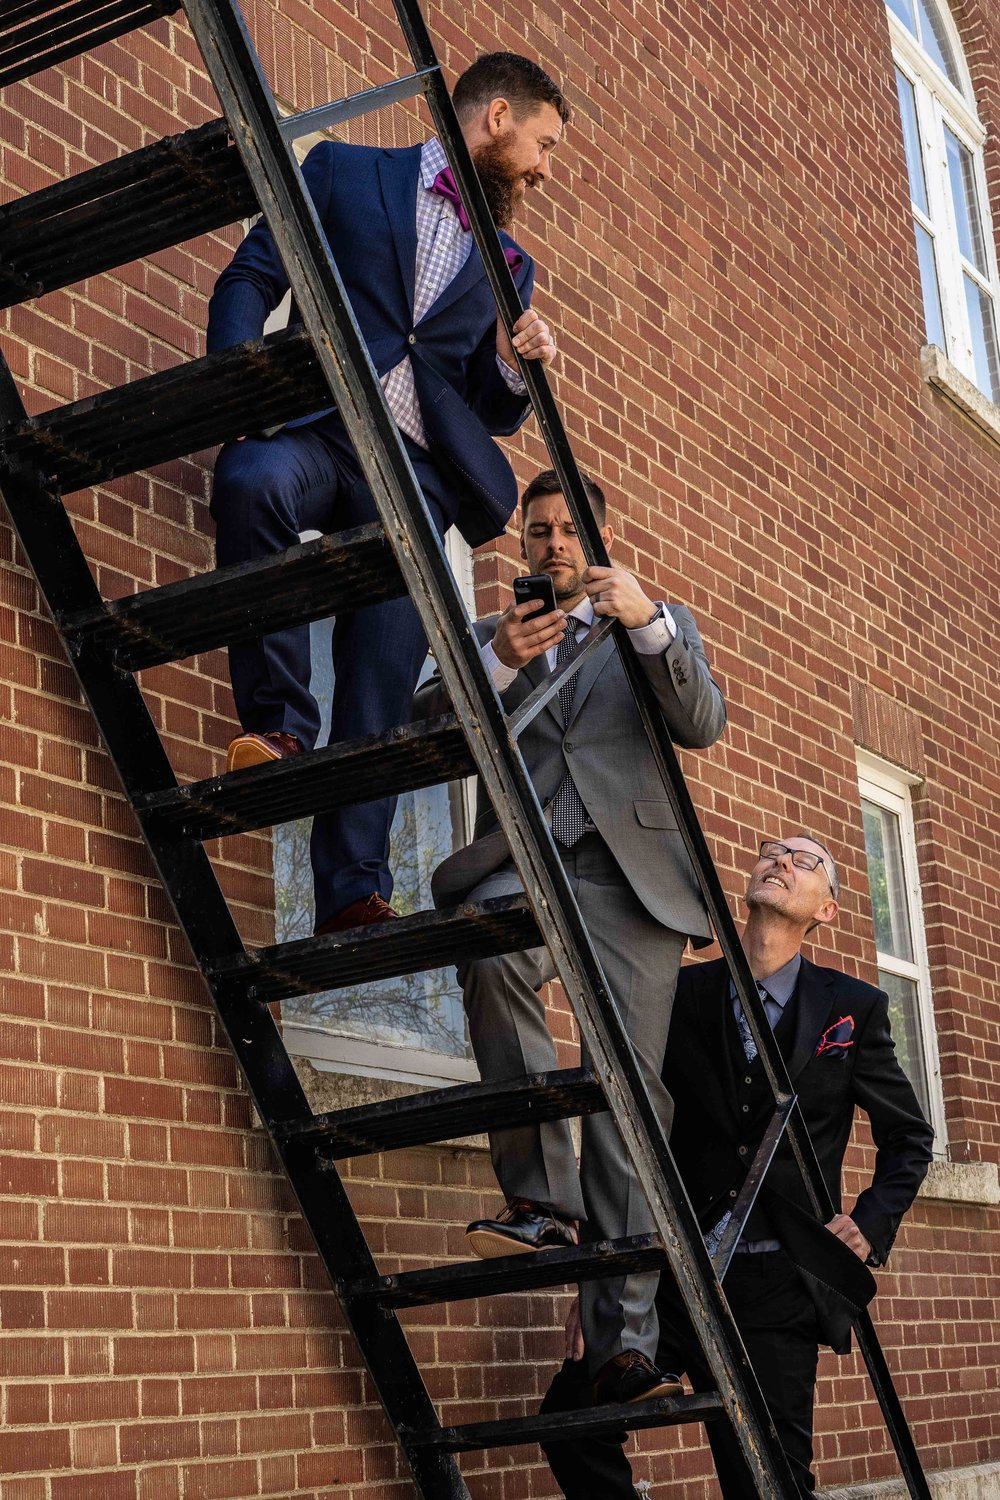 red guys up fire escape.jpg